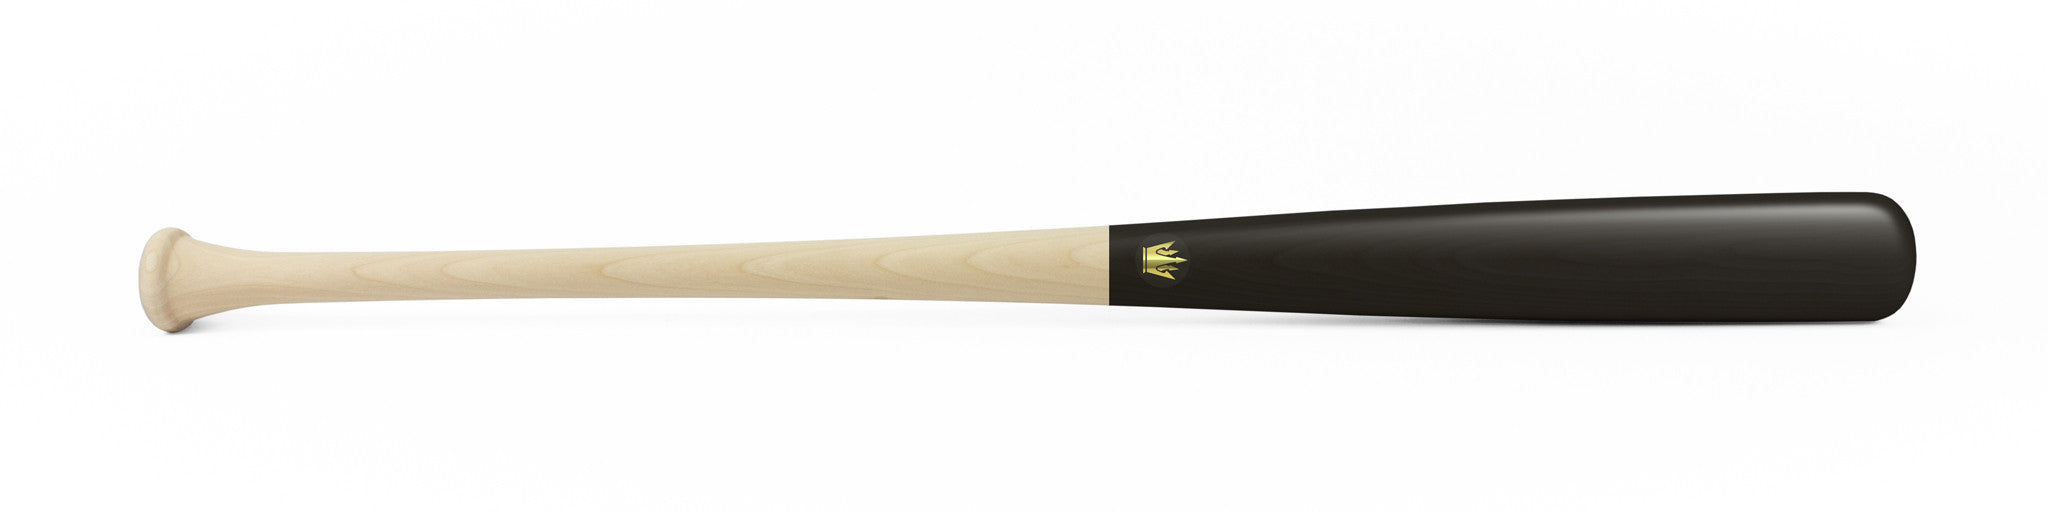 Wood bat - Maple model 271 Black Standard - 1